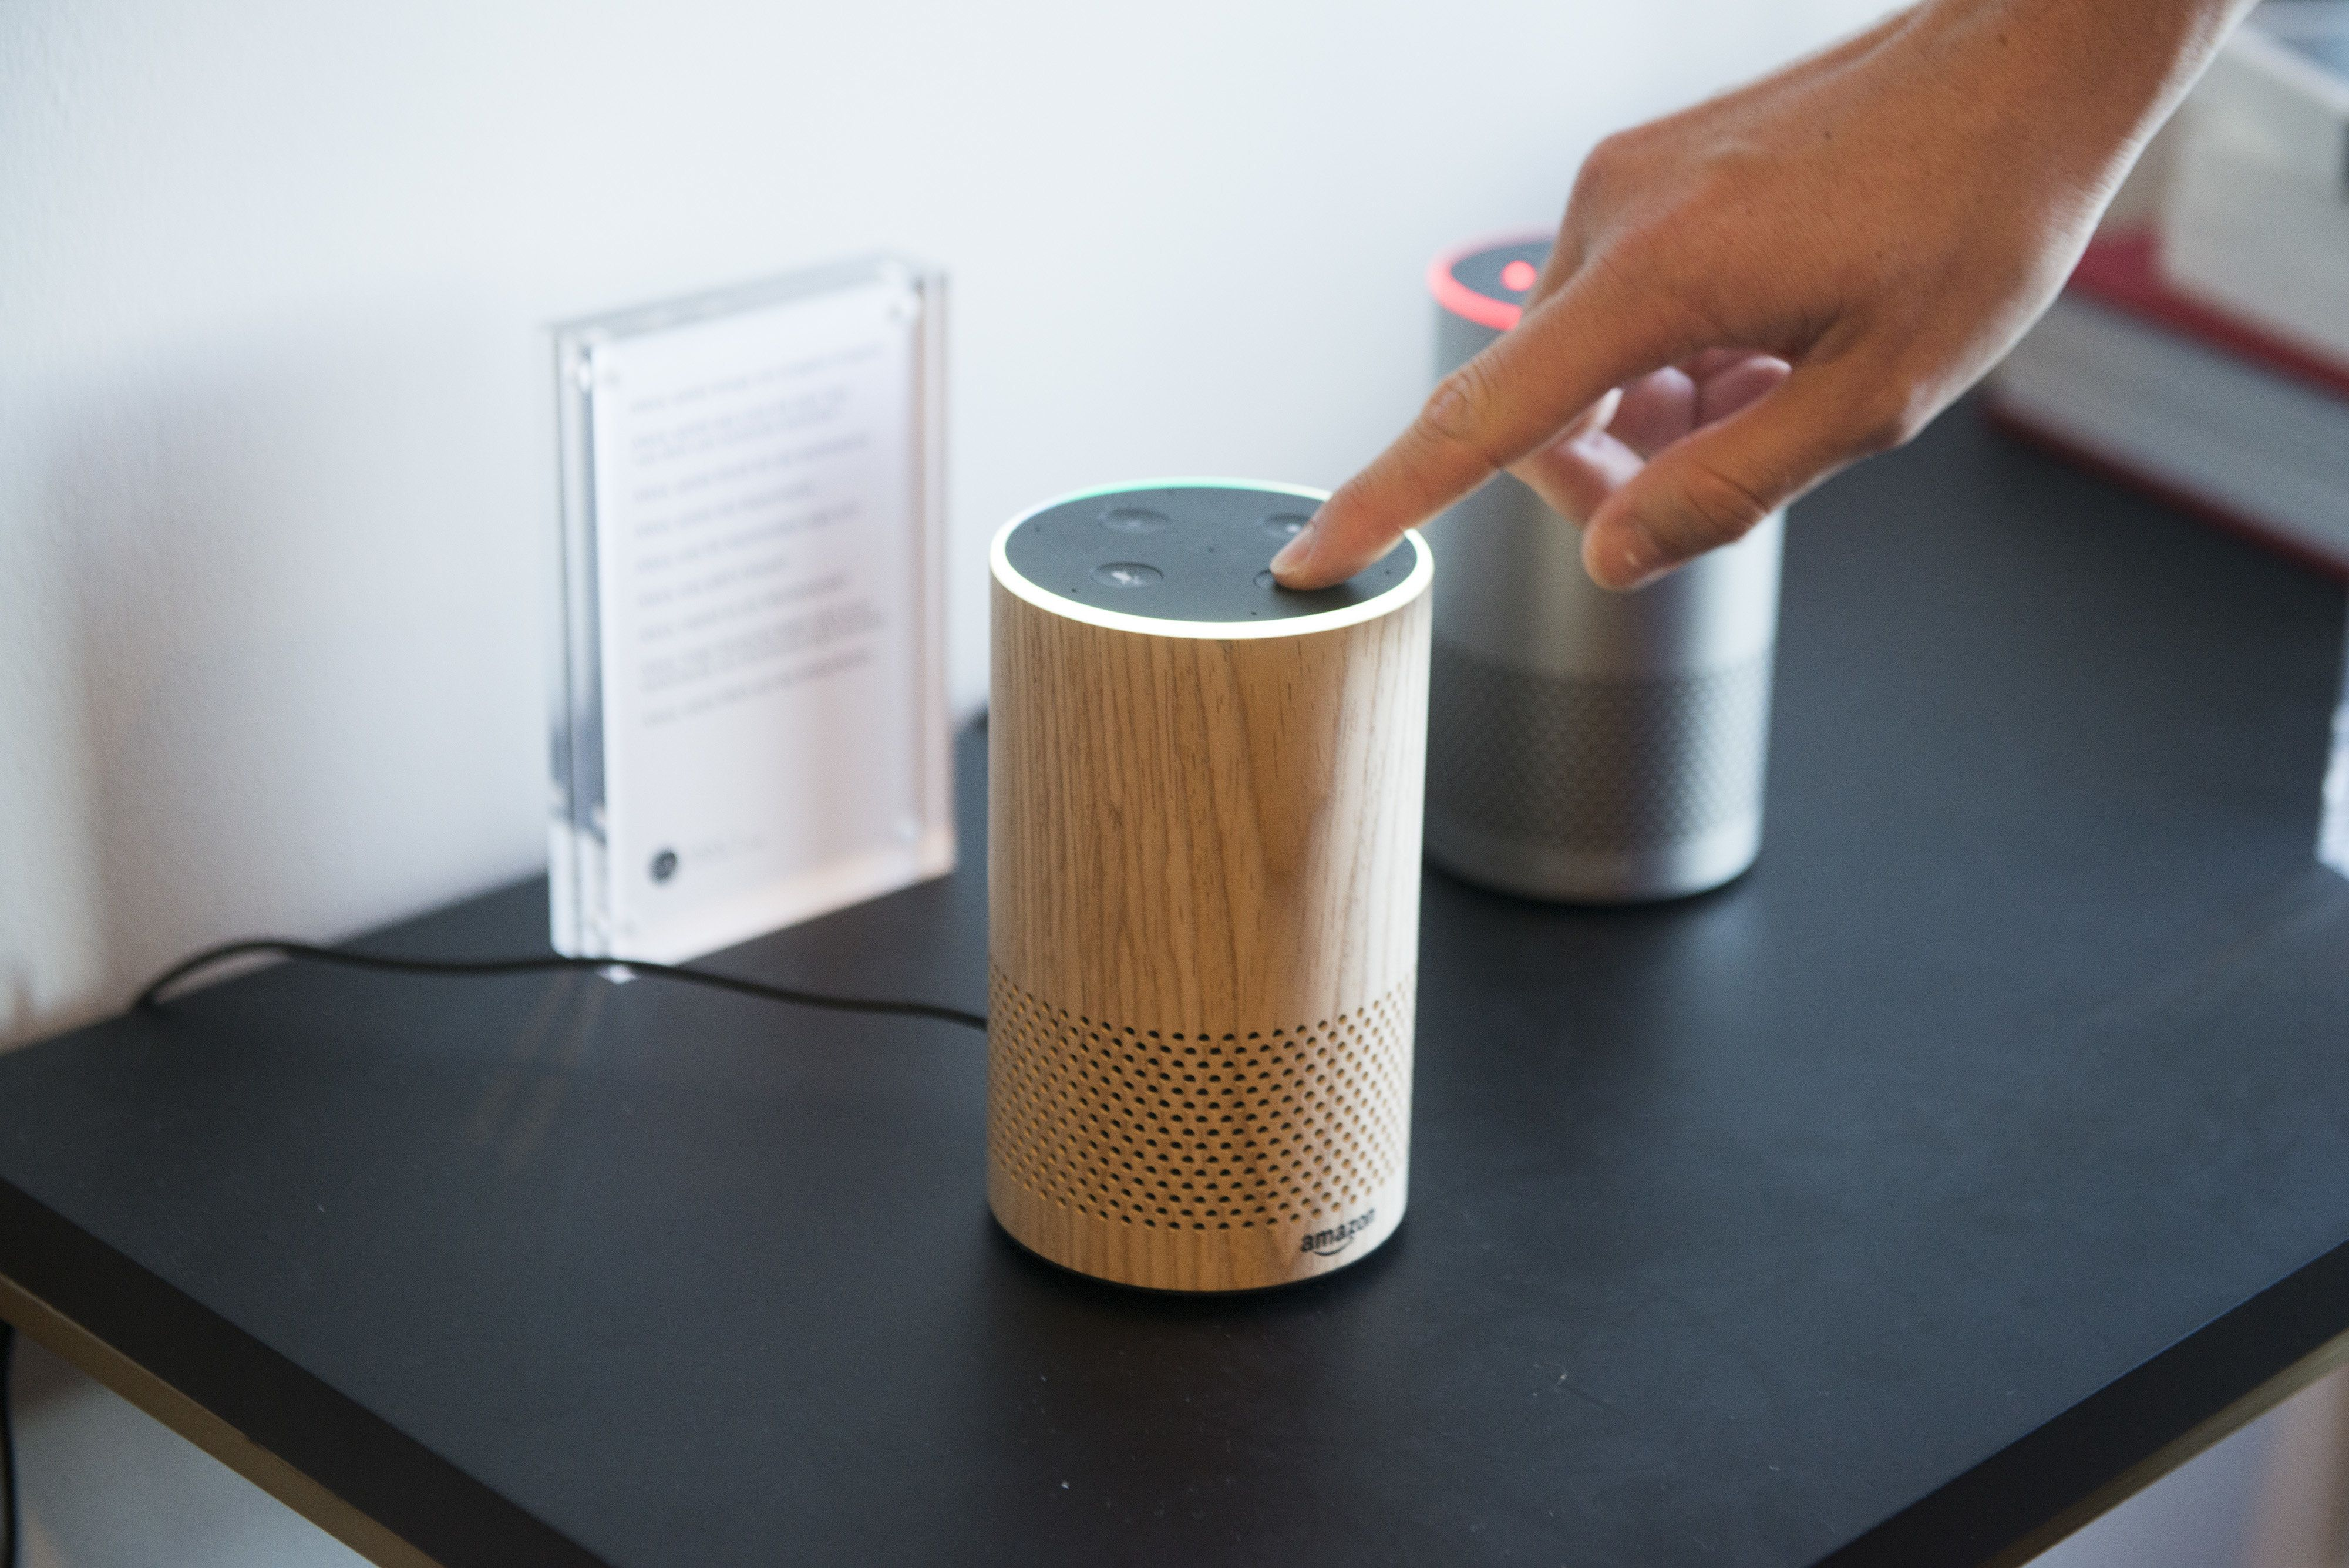 Experts Break Down The Difference Between Google Home and Amazon Echo